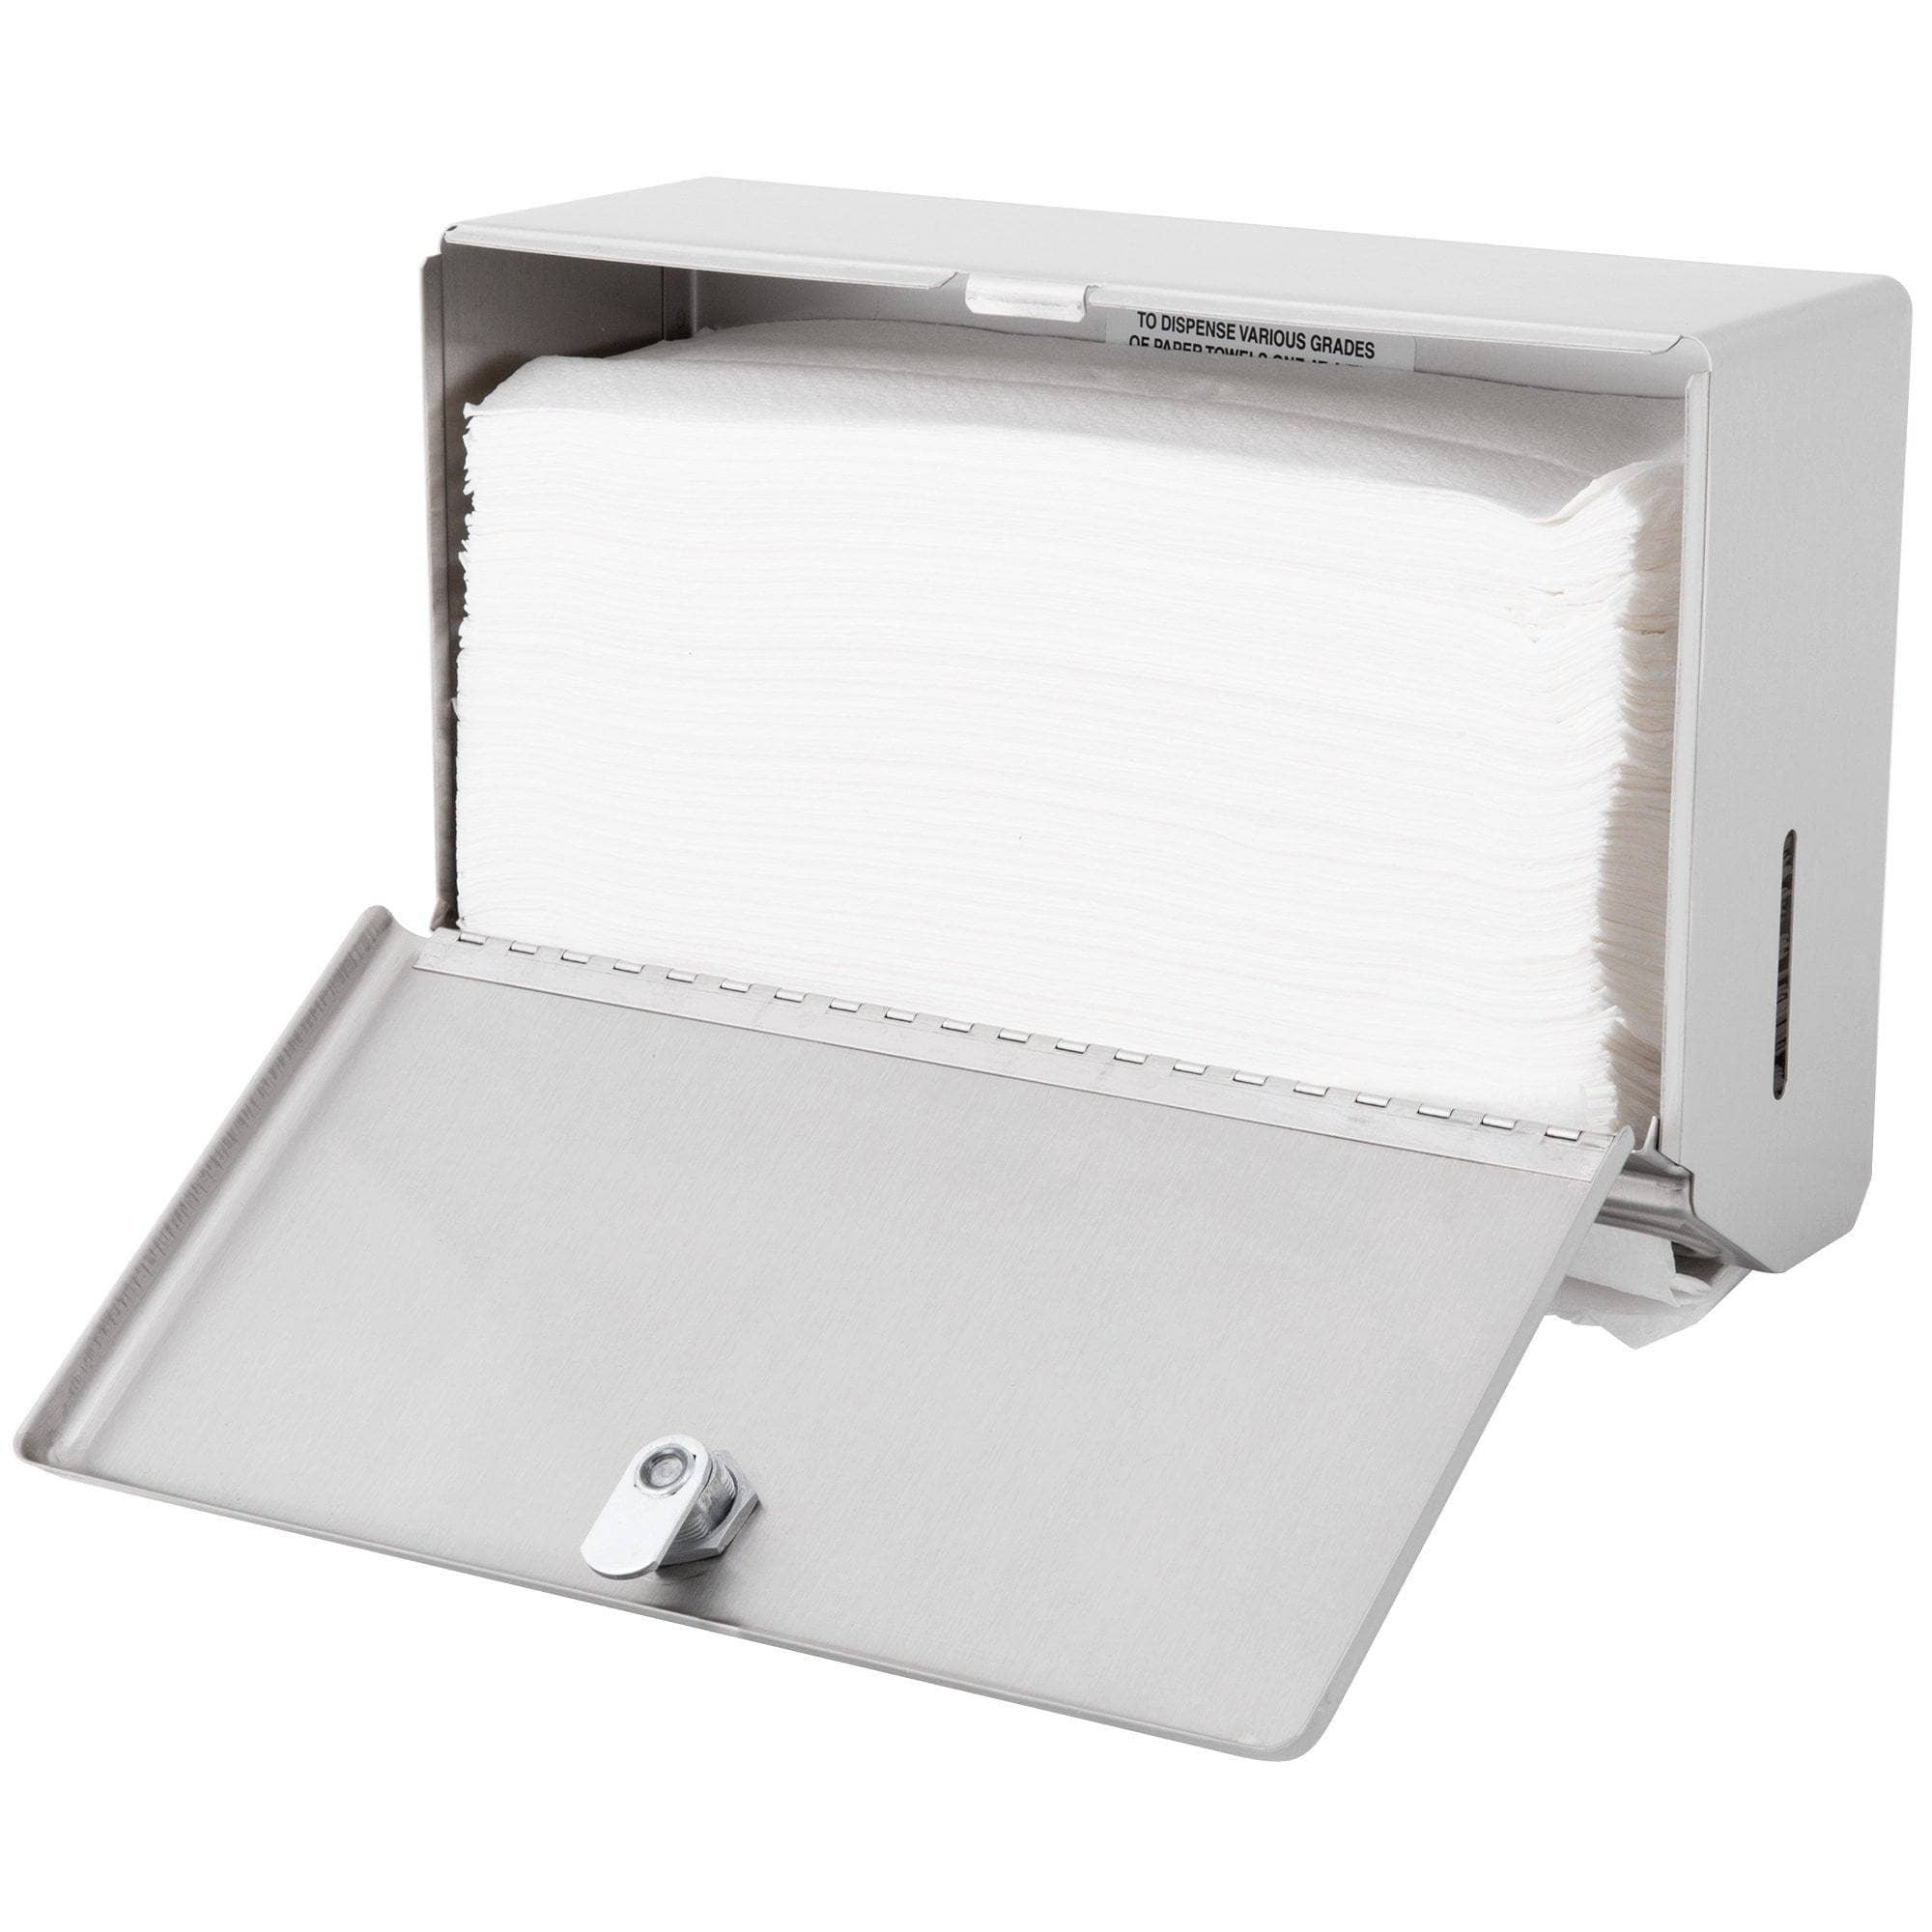 Bobrick B-2621 Commercial Paper Towel Dispenser, Surface-Mounted, Stainless Steel